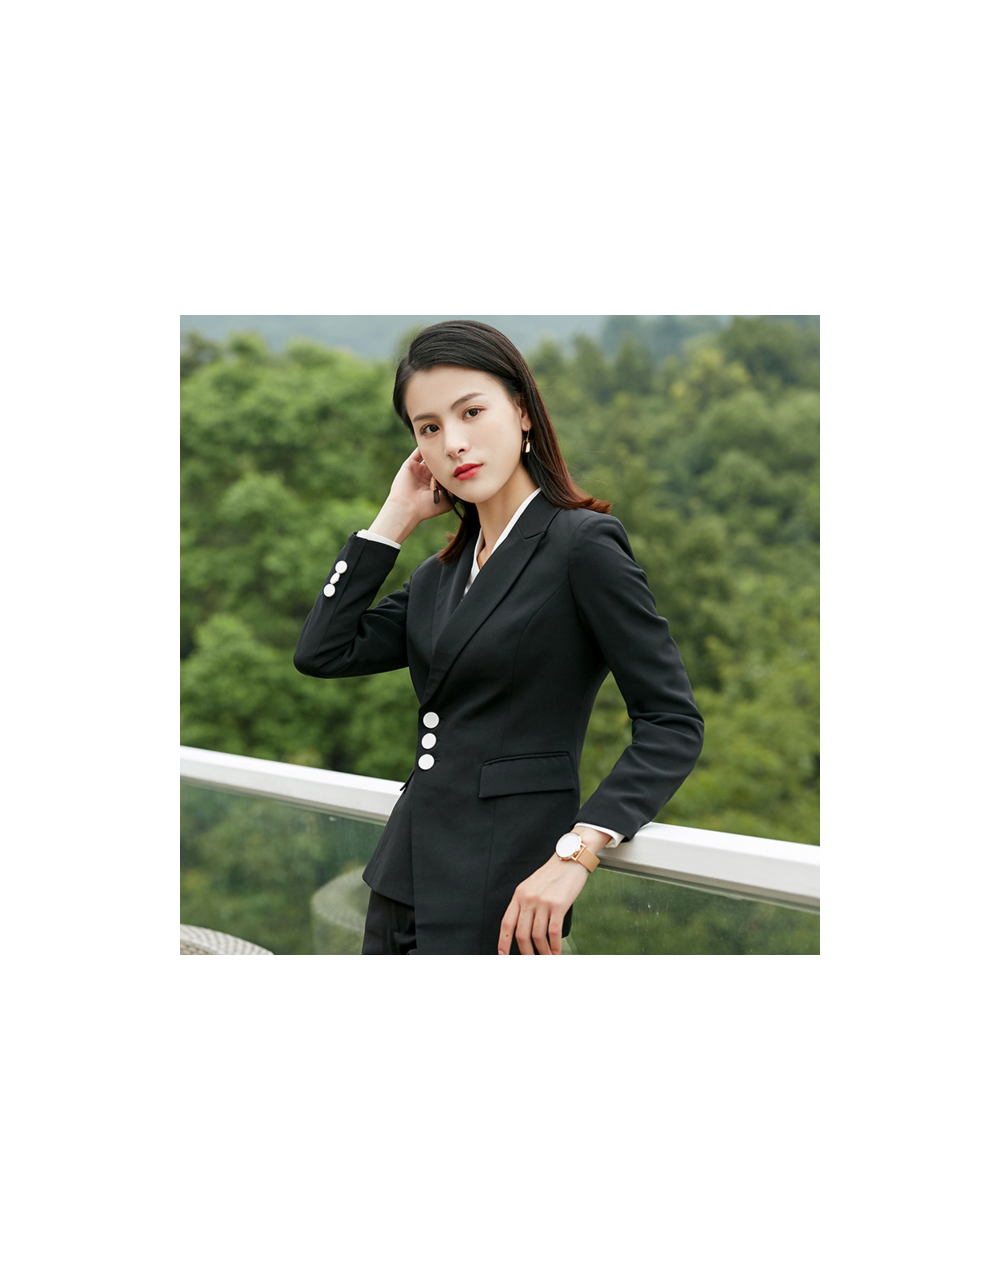 Winter White Elegant Office Lady Business Suits Female Two Piece Sets Femme Long Sleeve Blazer Jacket + Pants Suits Outfits ...